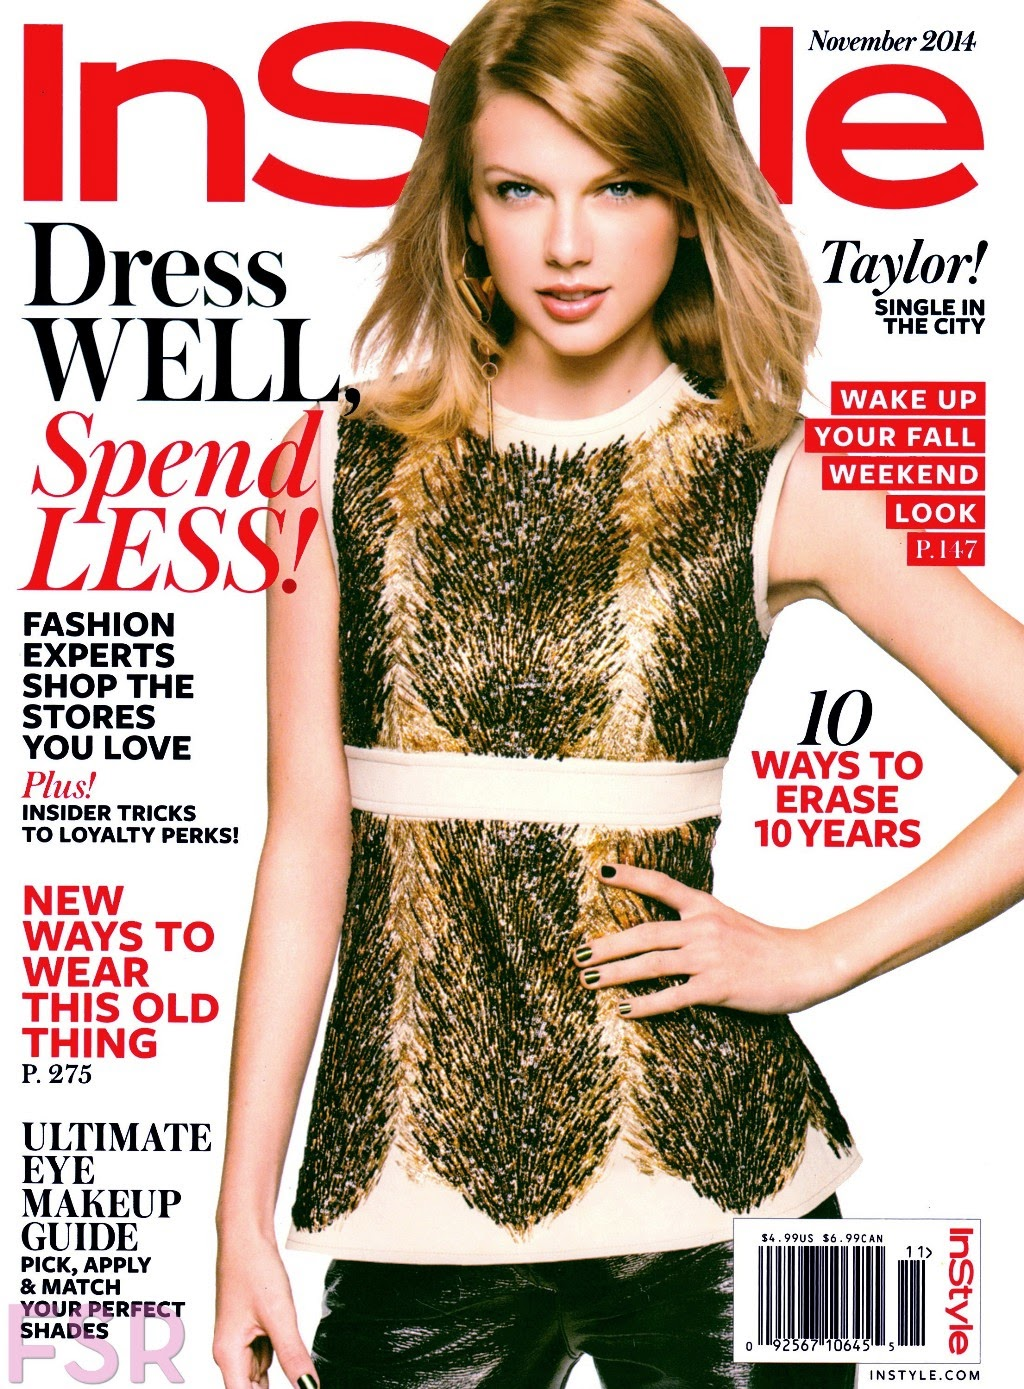 Instyle Magazine Us: Arts Cross Stitch: Taylor Swift